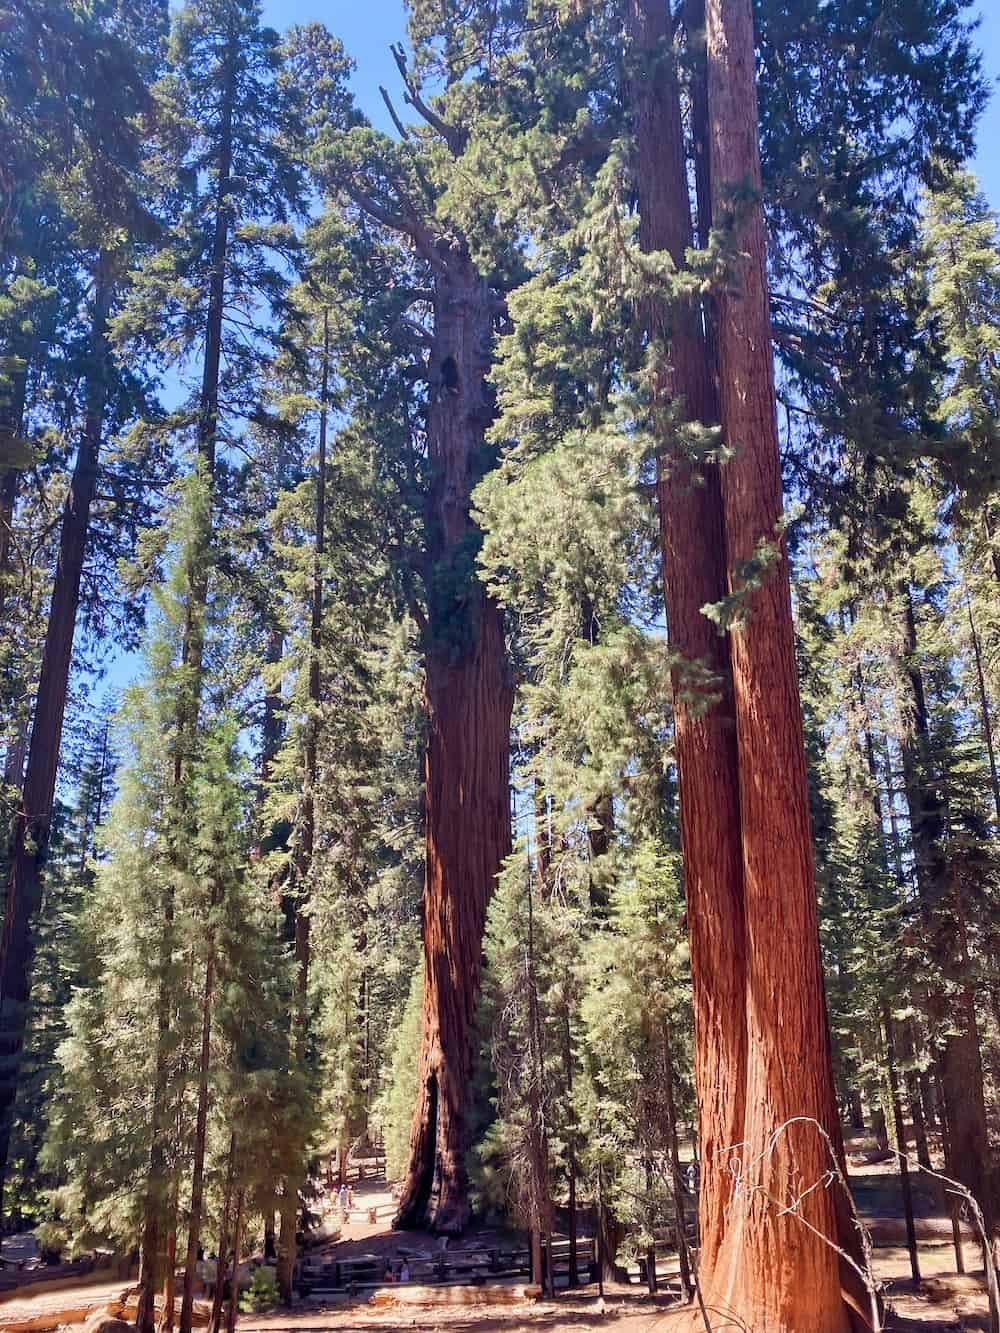 One Day in Sequoia National Park